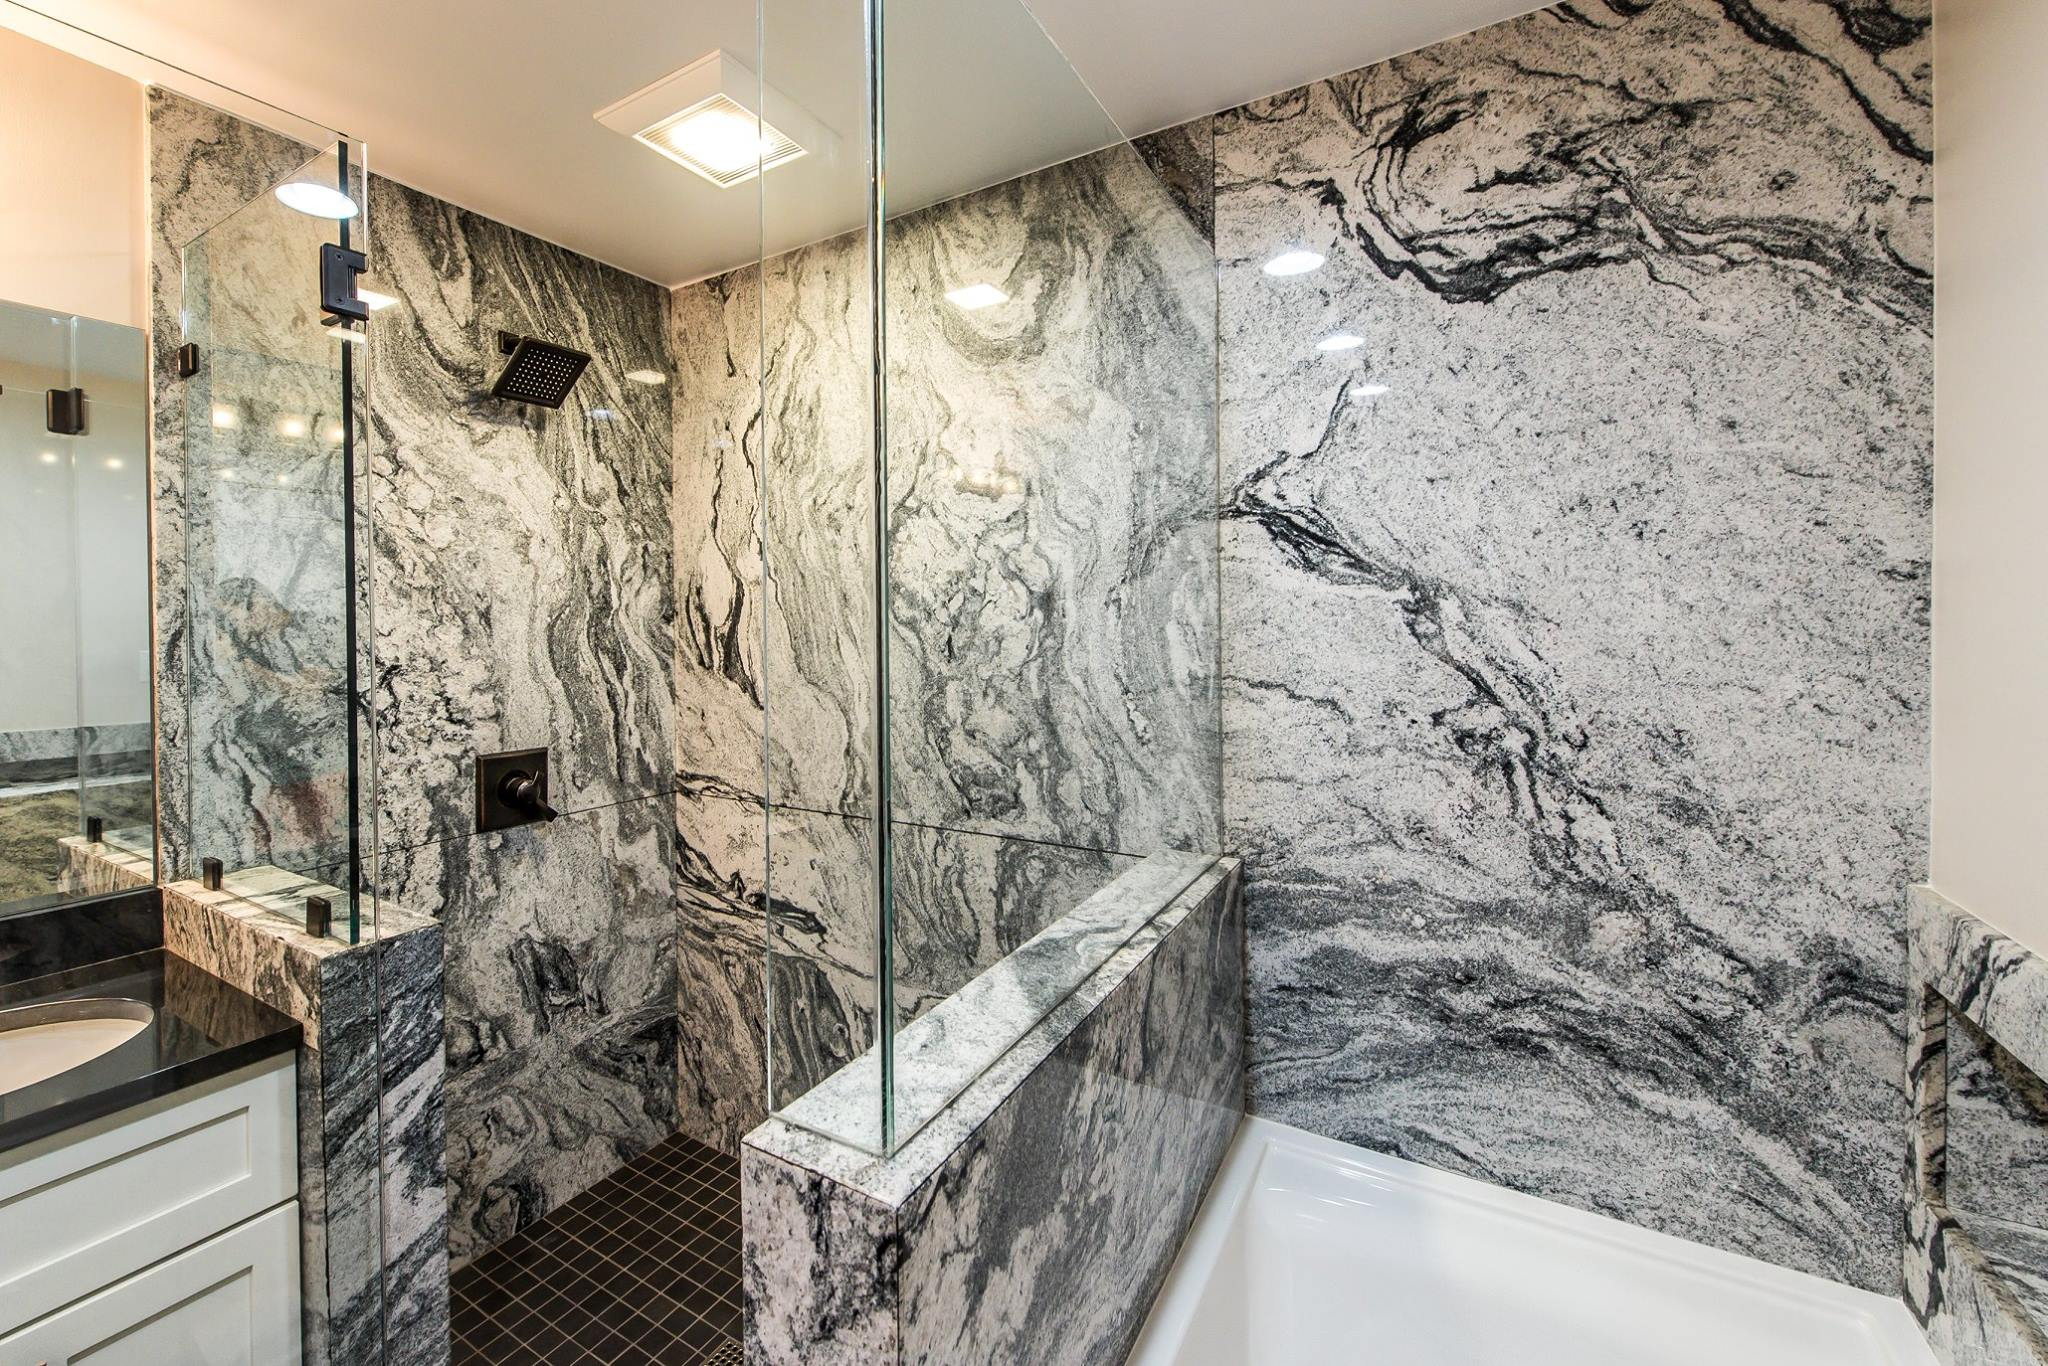 Granite In The Shower Ohio Property Brothers with regard to dimensions 2048 X 1366